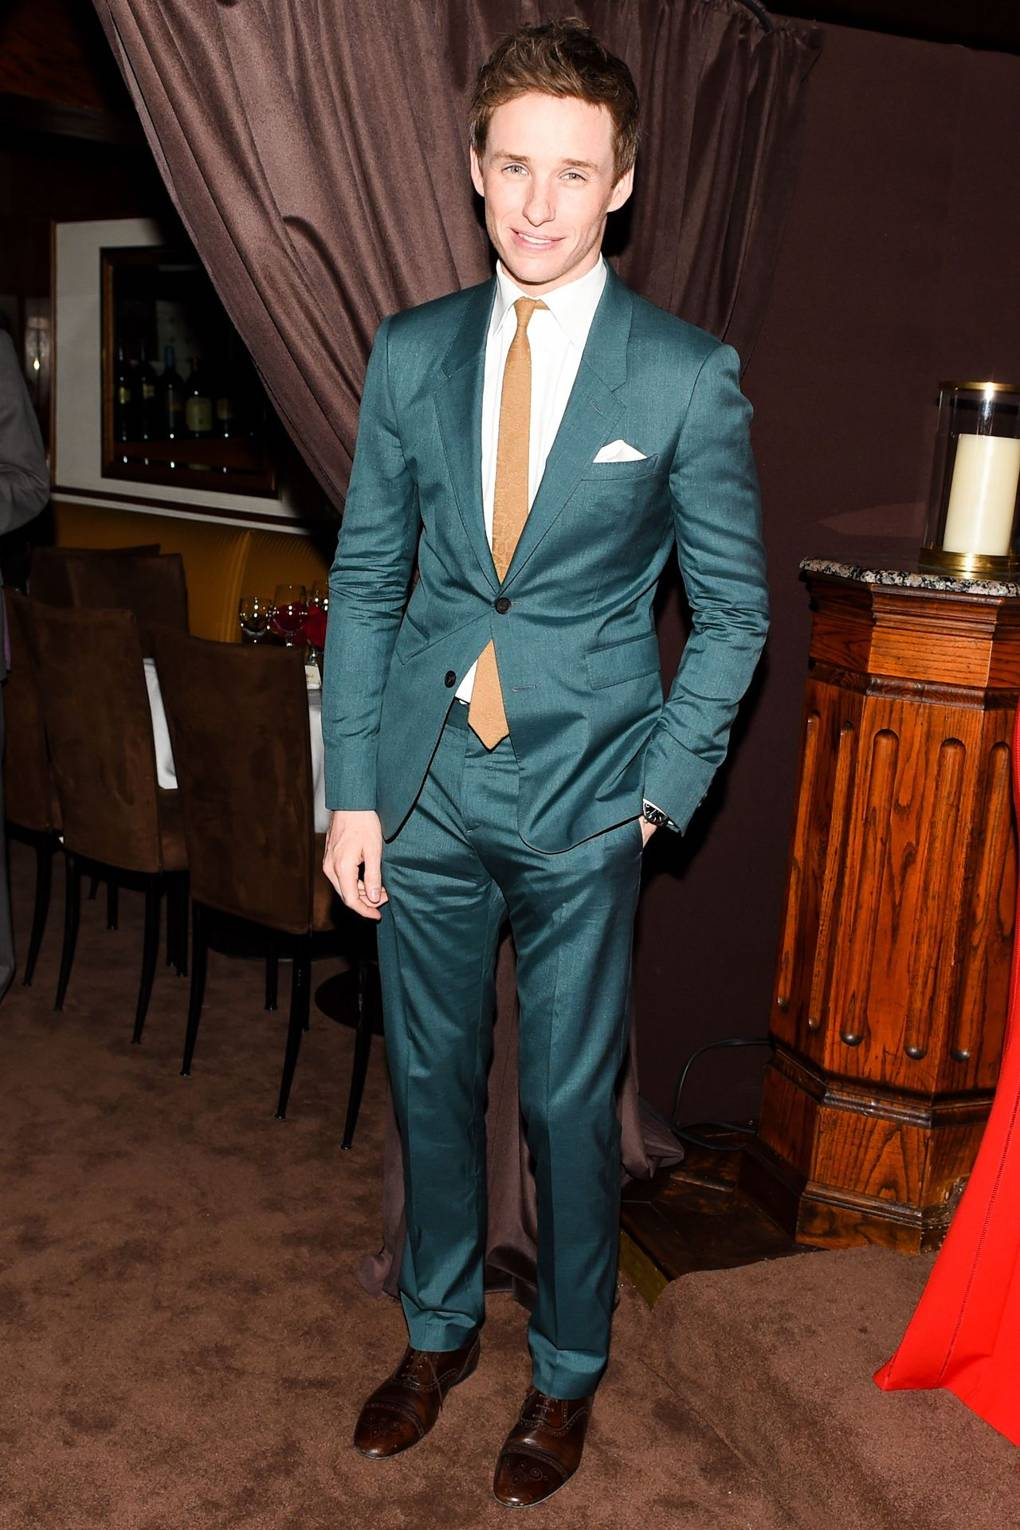 Get a green suit this spring | British GQ